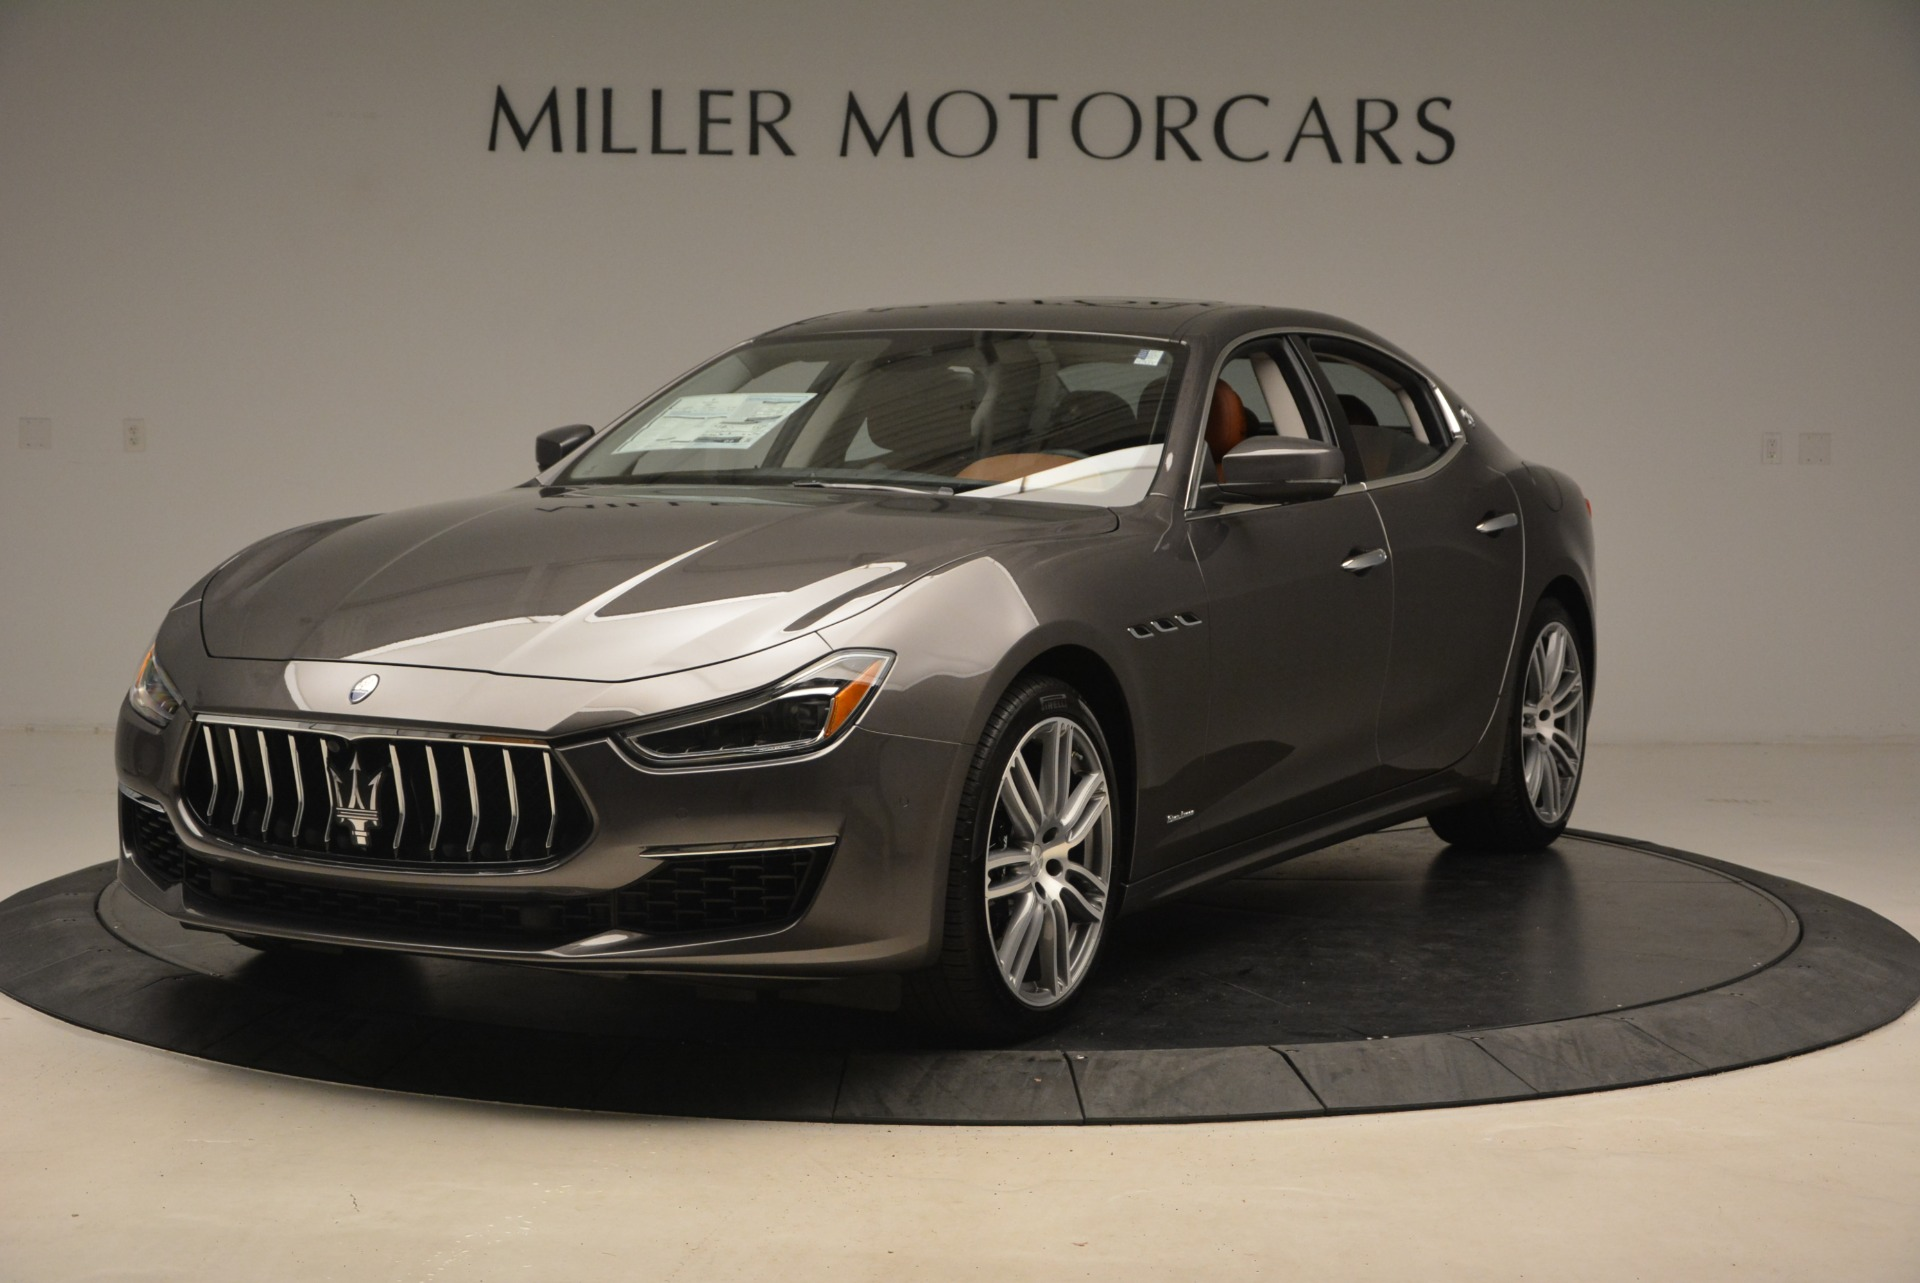 New 2018 Maserati Ghibli S Q4 GranLusso For Sale In Greenwich, CT 1940_main